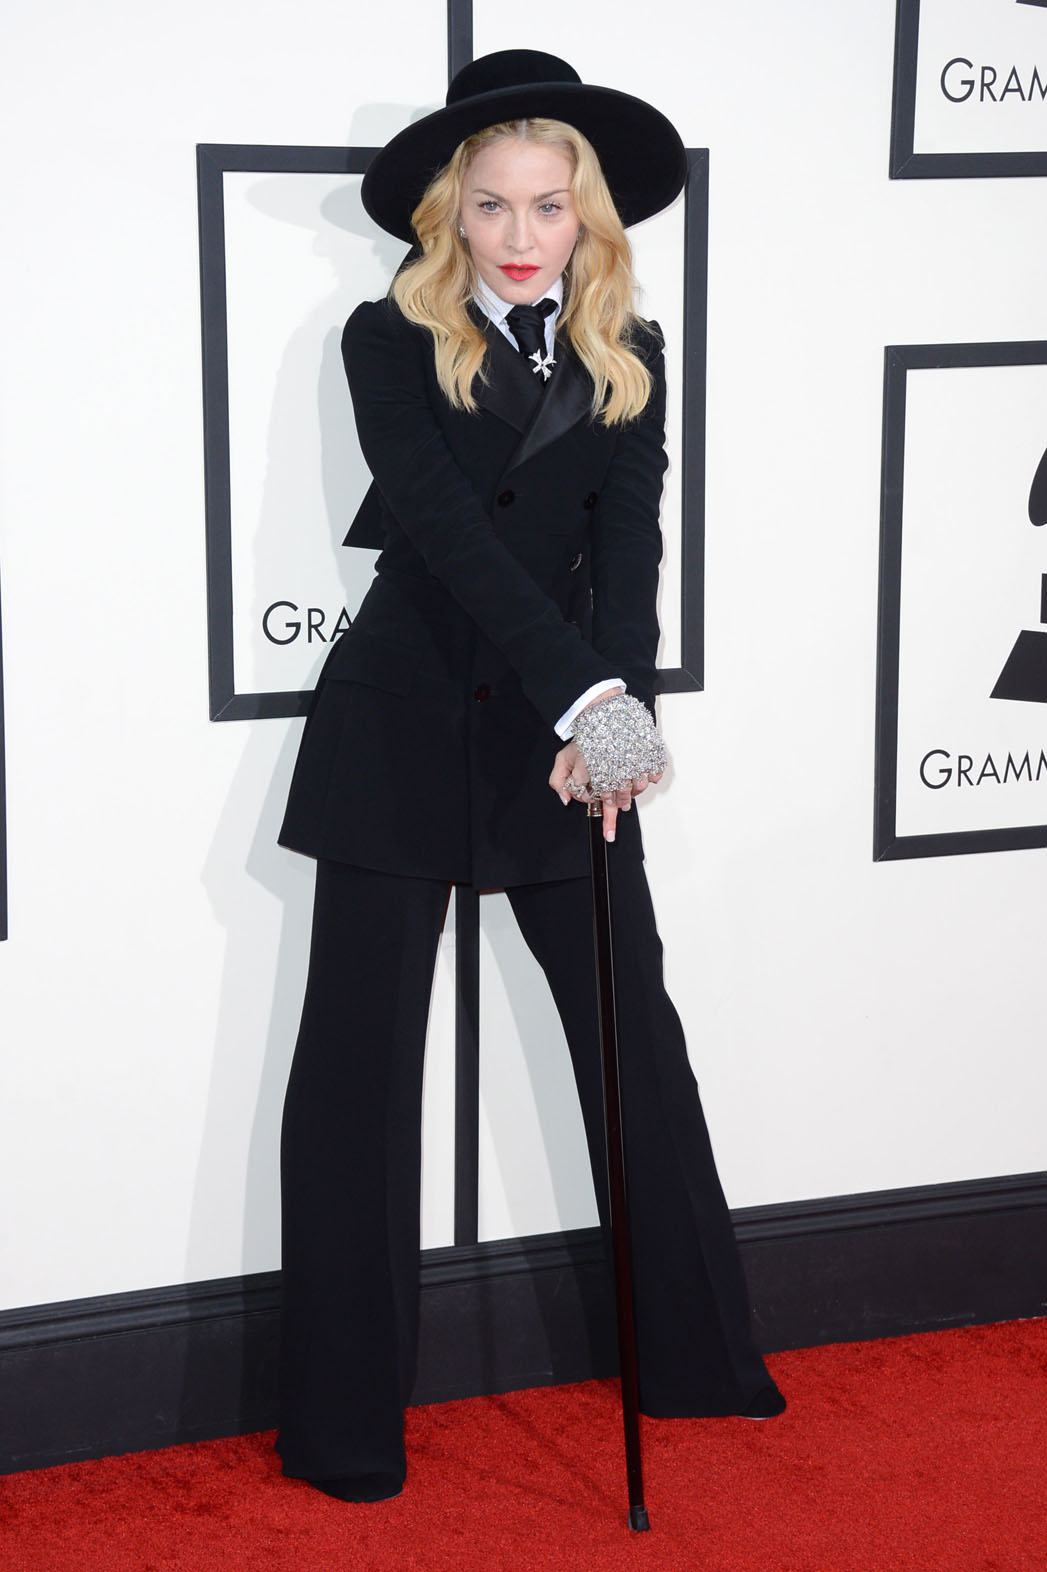 Oh Madge...no, no, no.  At your age, try to look elegant and classy, not cartoon-like.